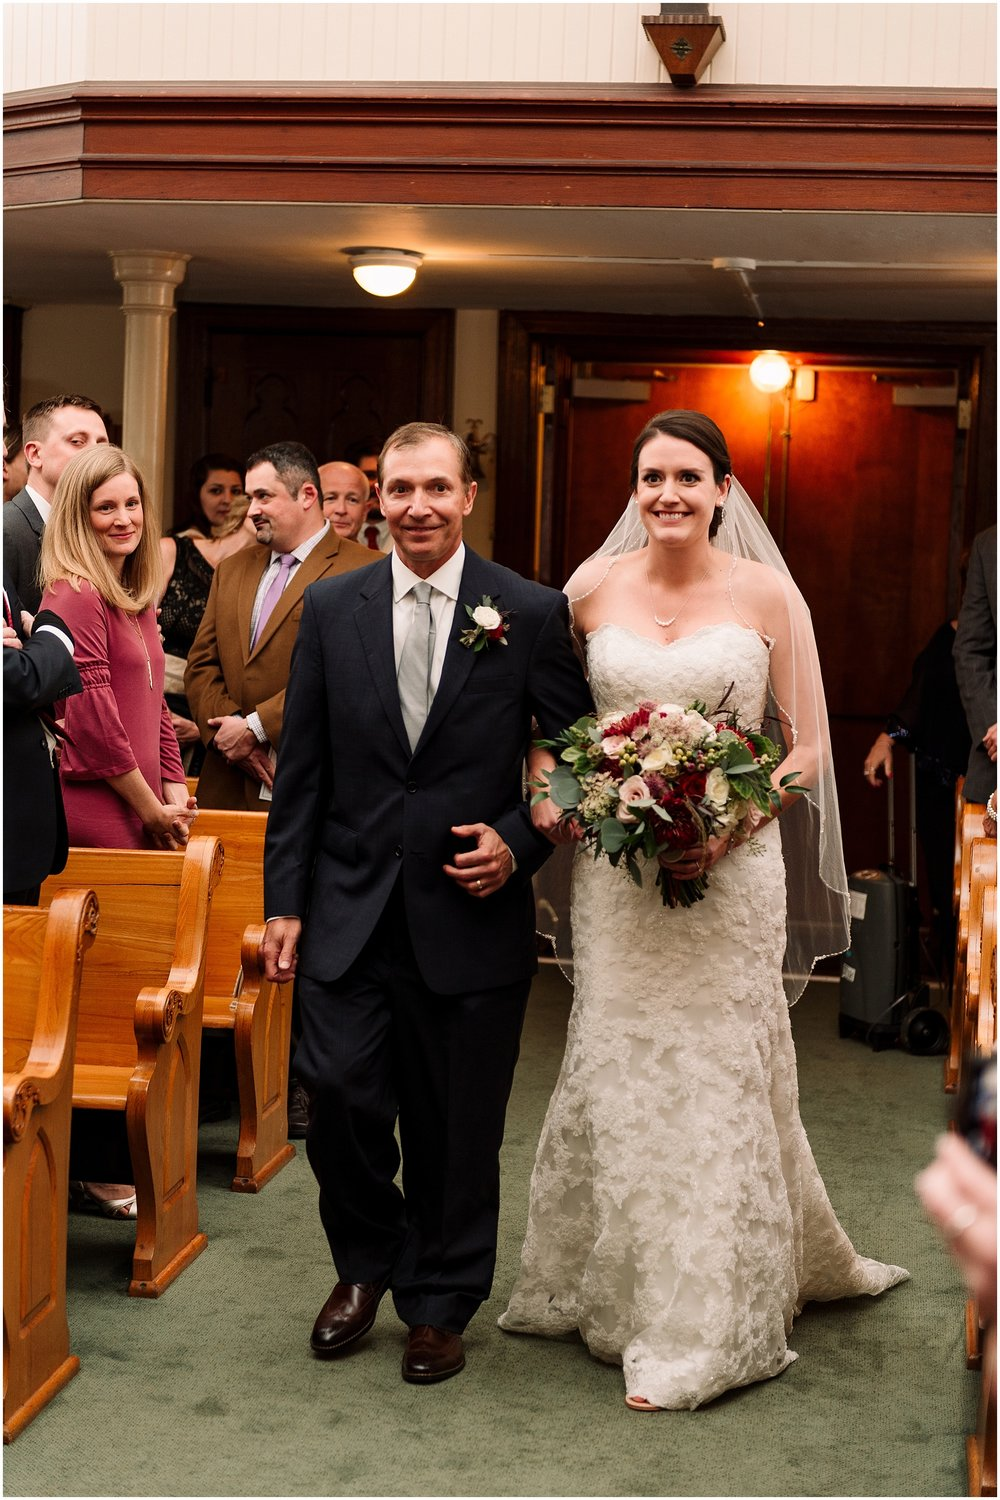 Hannah Leigh Photography The Bond Wedding York PA_6230.jpg